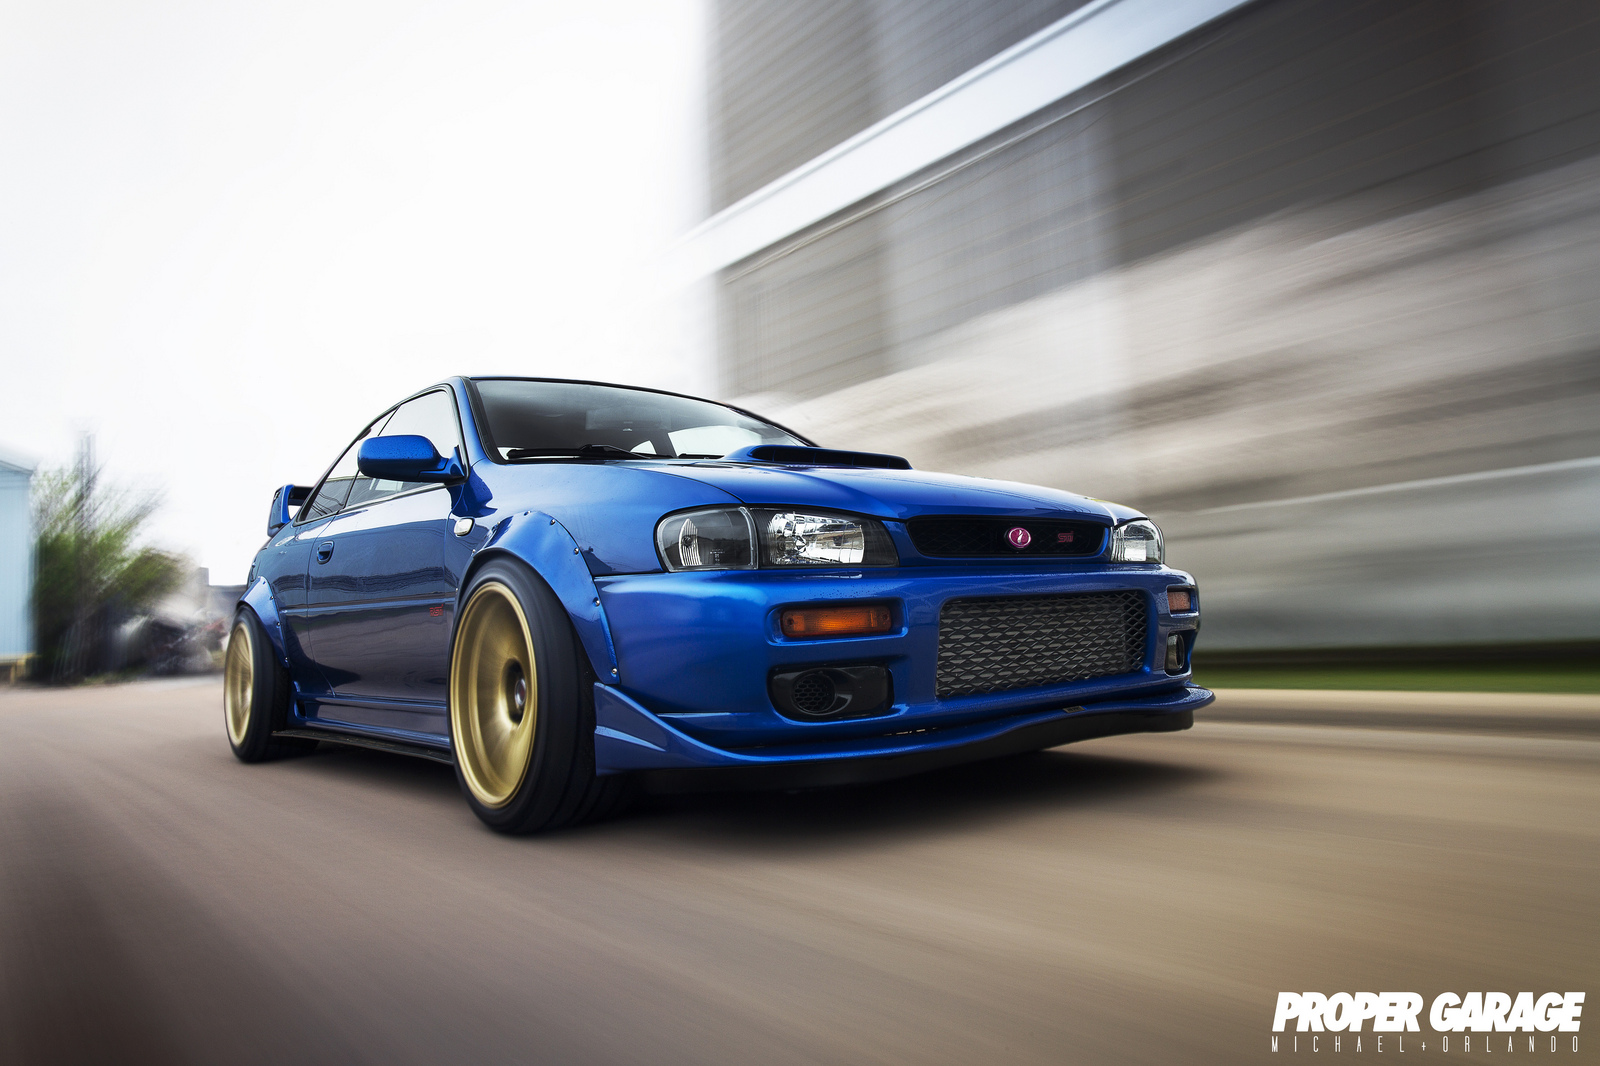 Best 50 RSTI Wallpaper on HipWallpaper RSTI Wallpaper 1600x1066